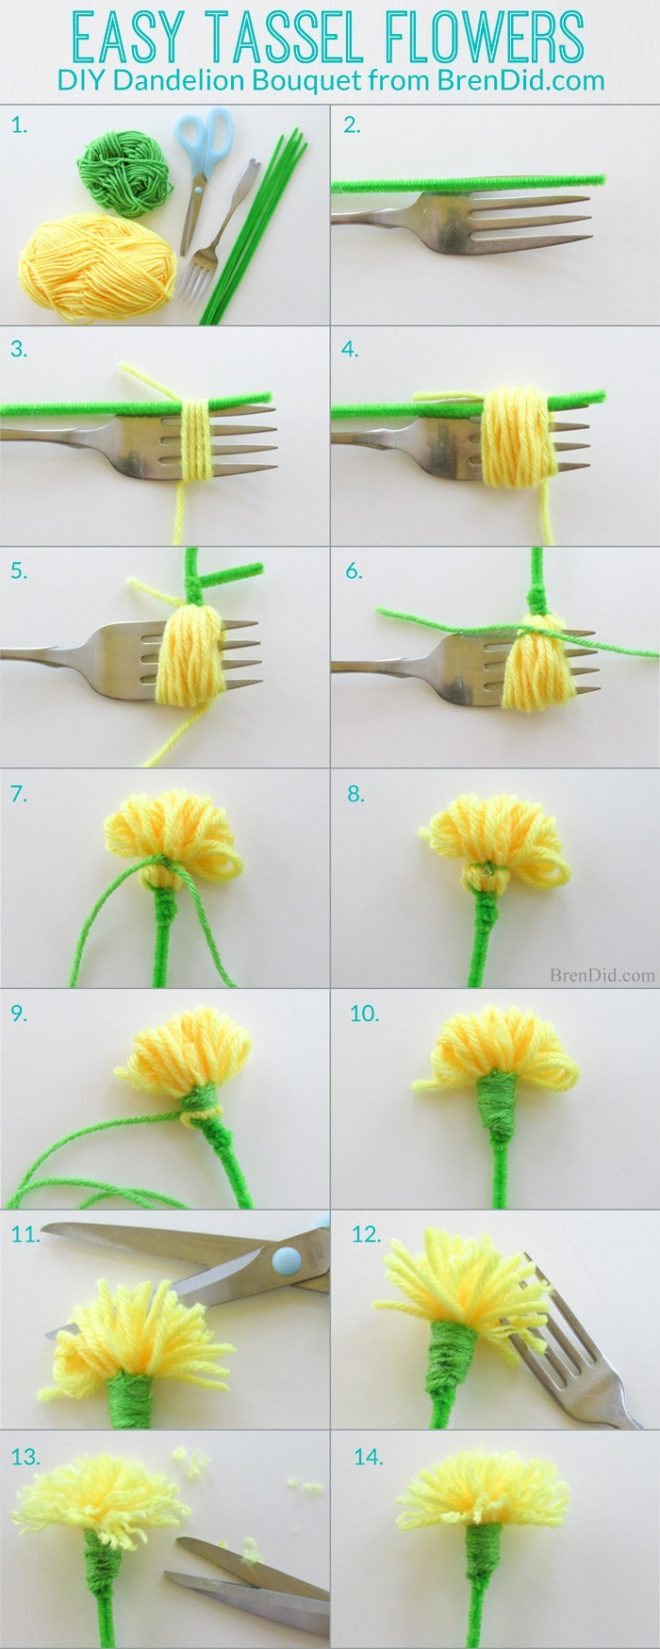 How To Make DIY Dandelion Bouquet